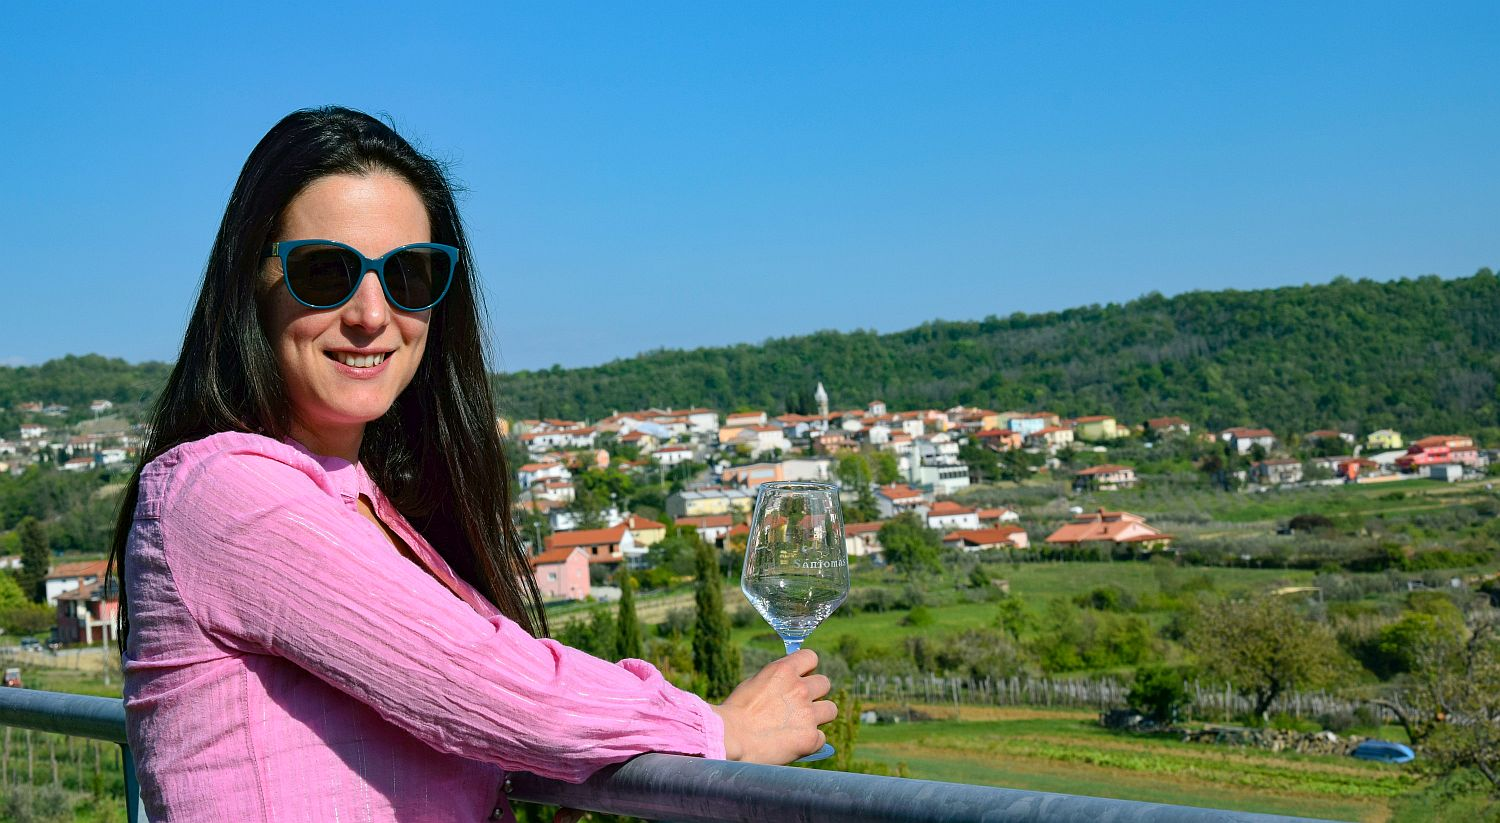 Denise Rejec of Wine Dine Slovenia admires the view from the terrace at Santomas winery